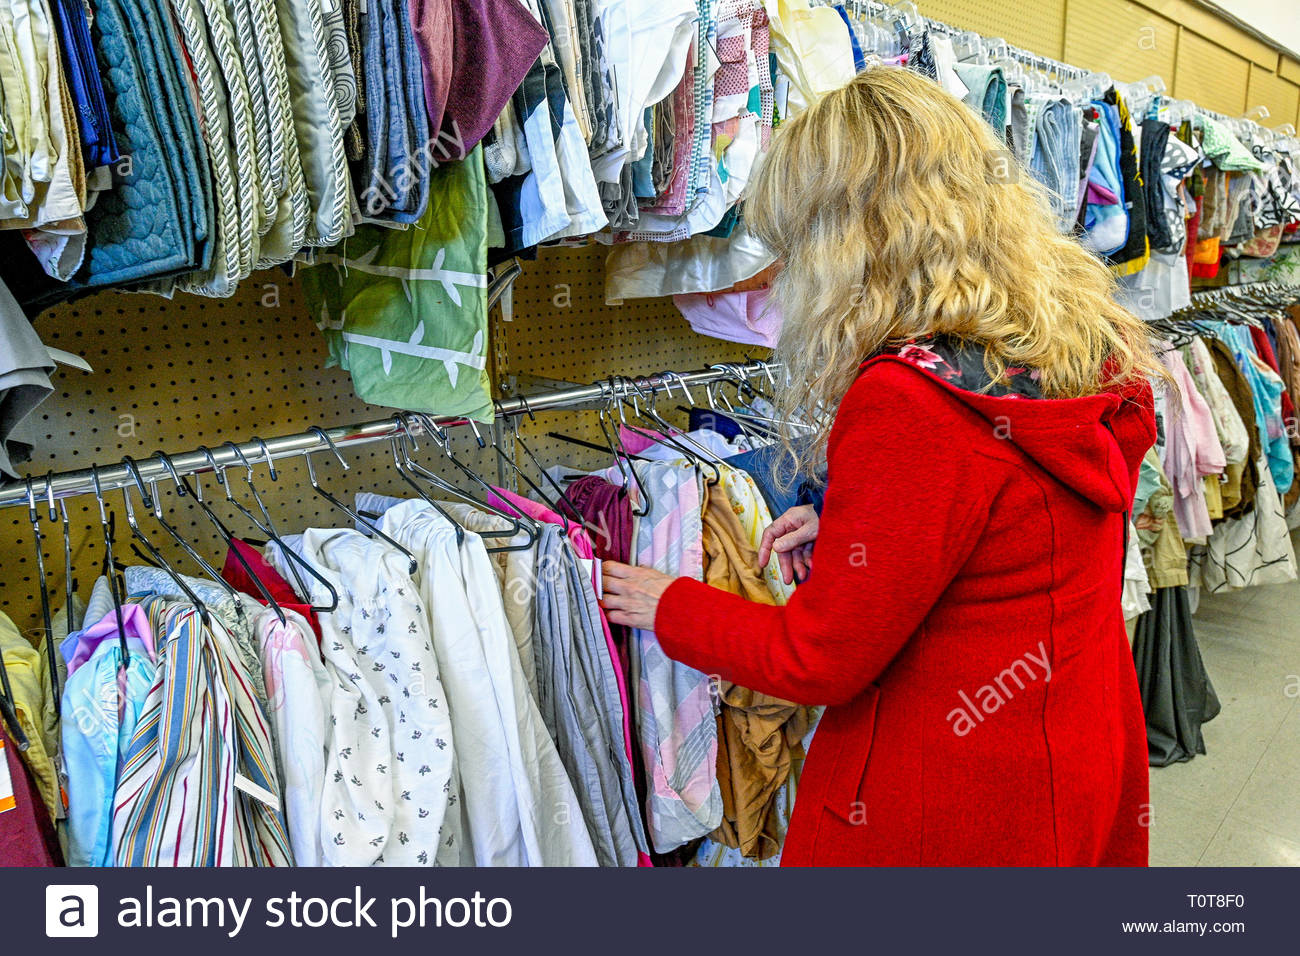 Woman browsing clothes in 2nd hand thrift, goodwill store, shop - Stock Image